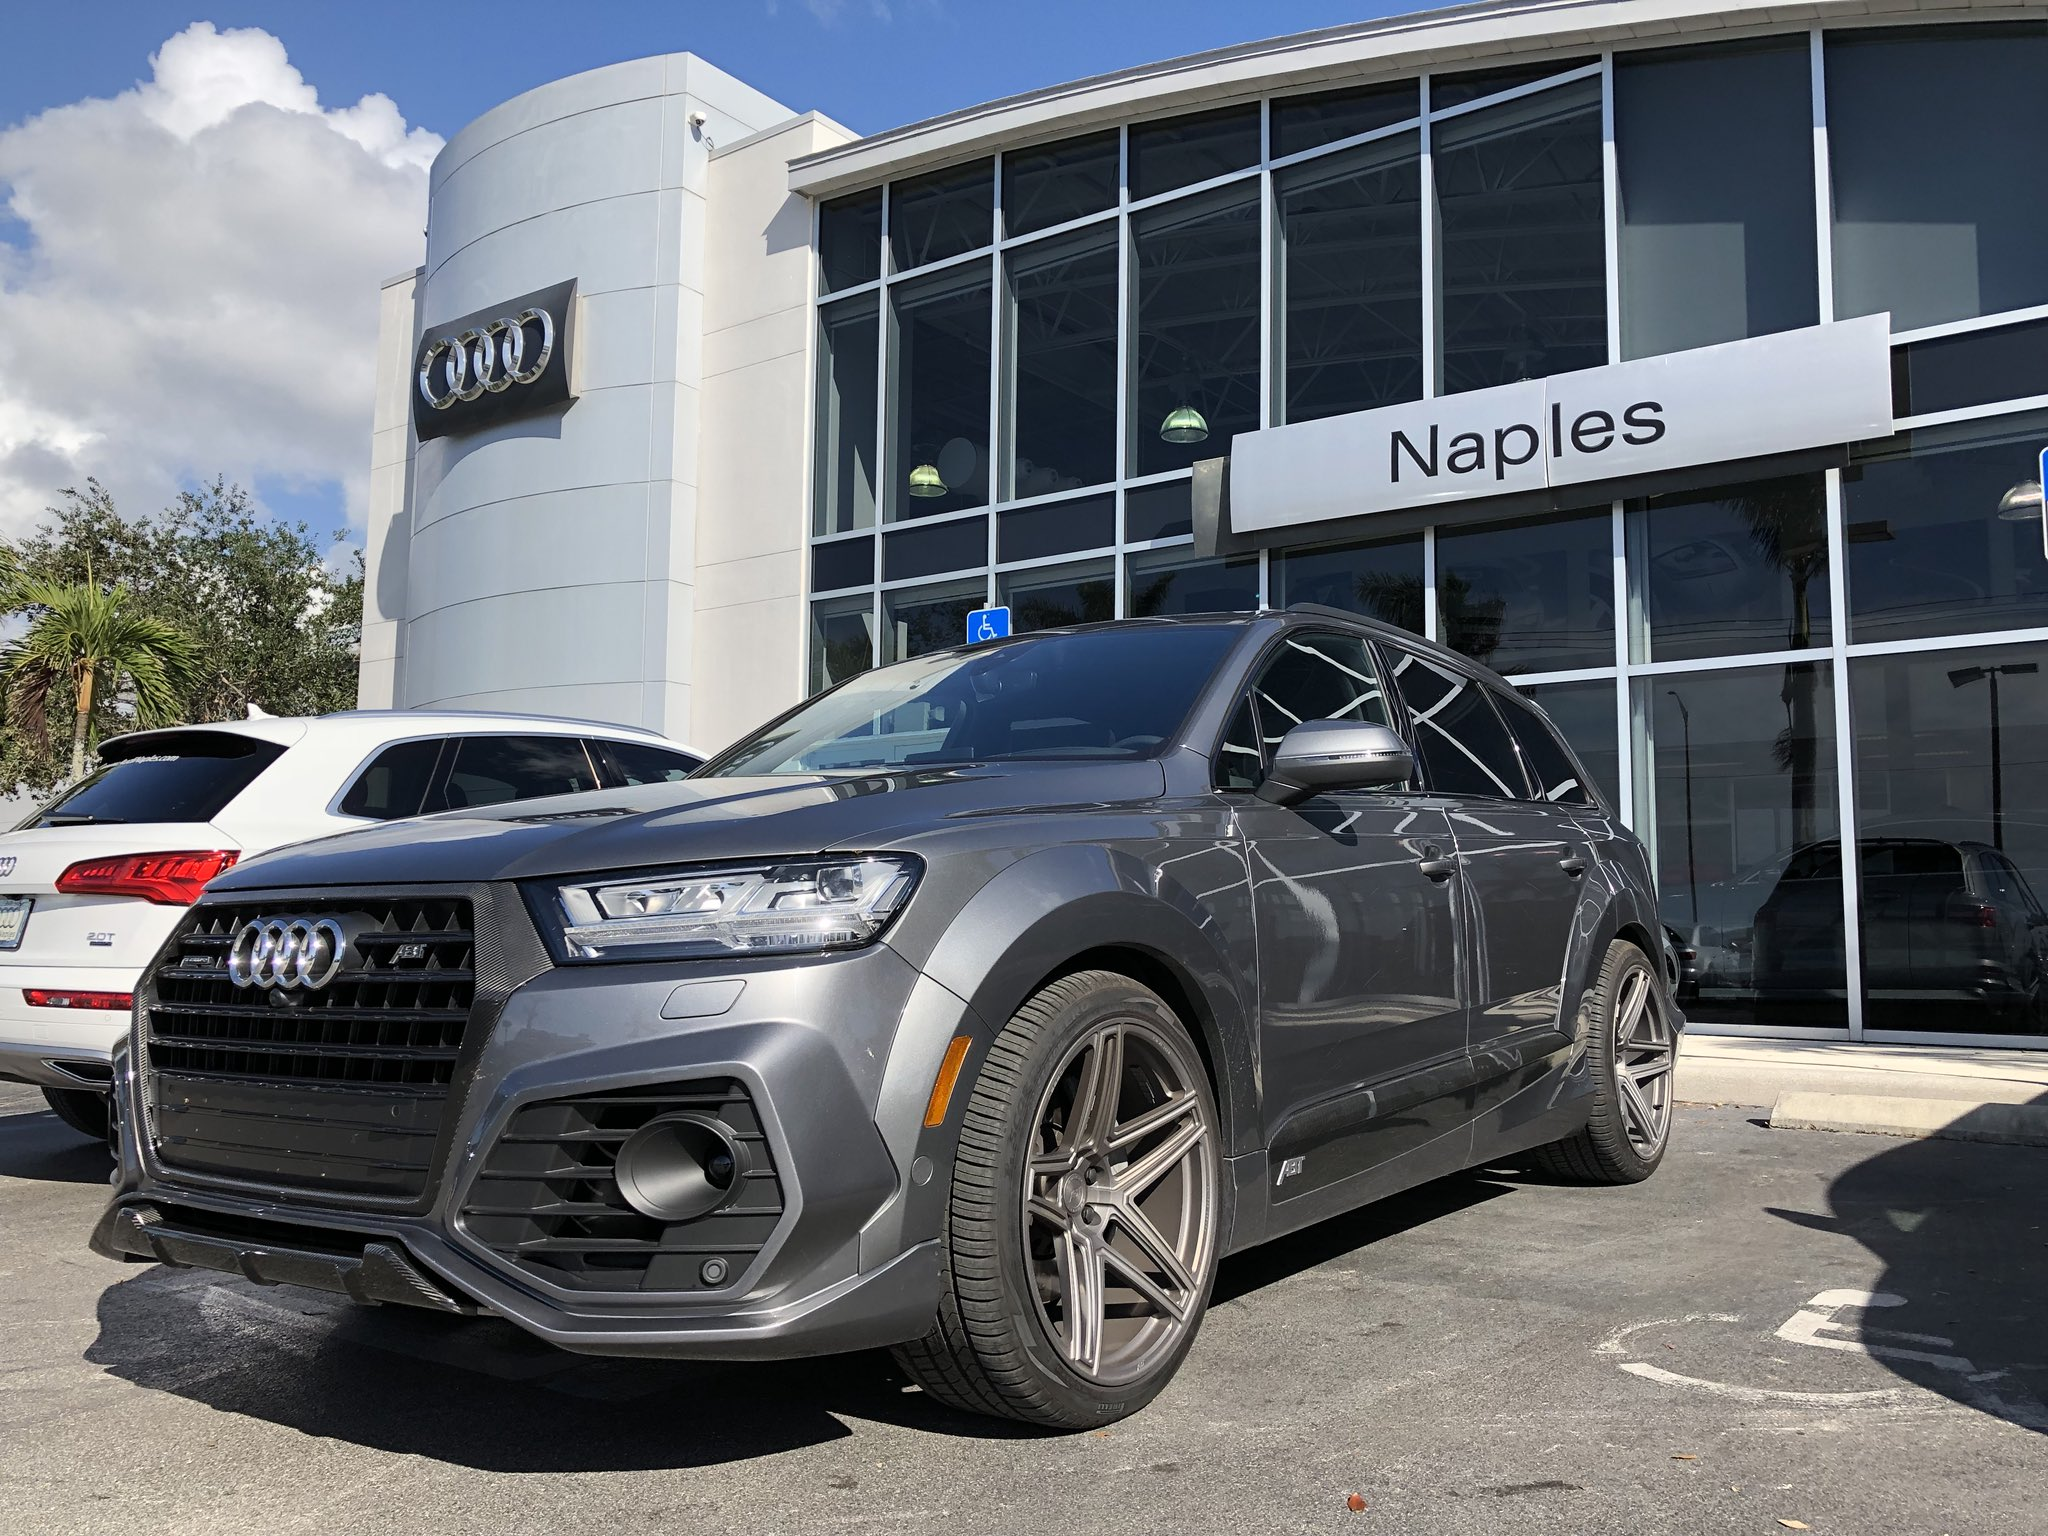 abt sportsline on twitter you want to see the audi q7 abt vossen